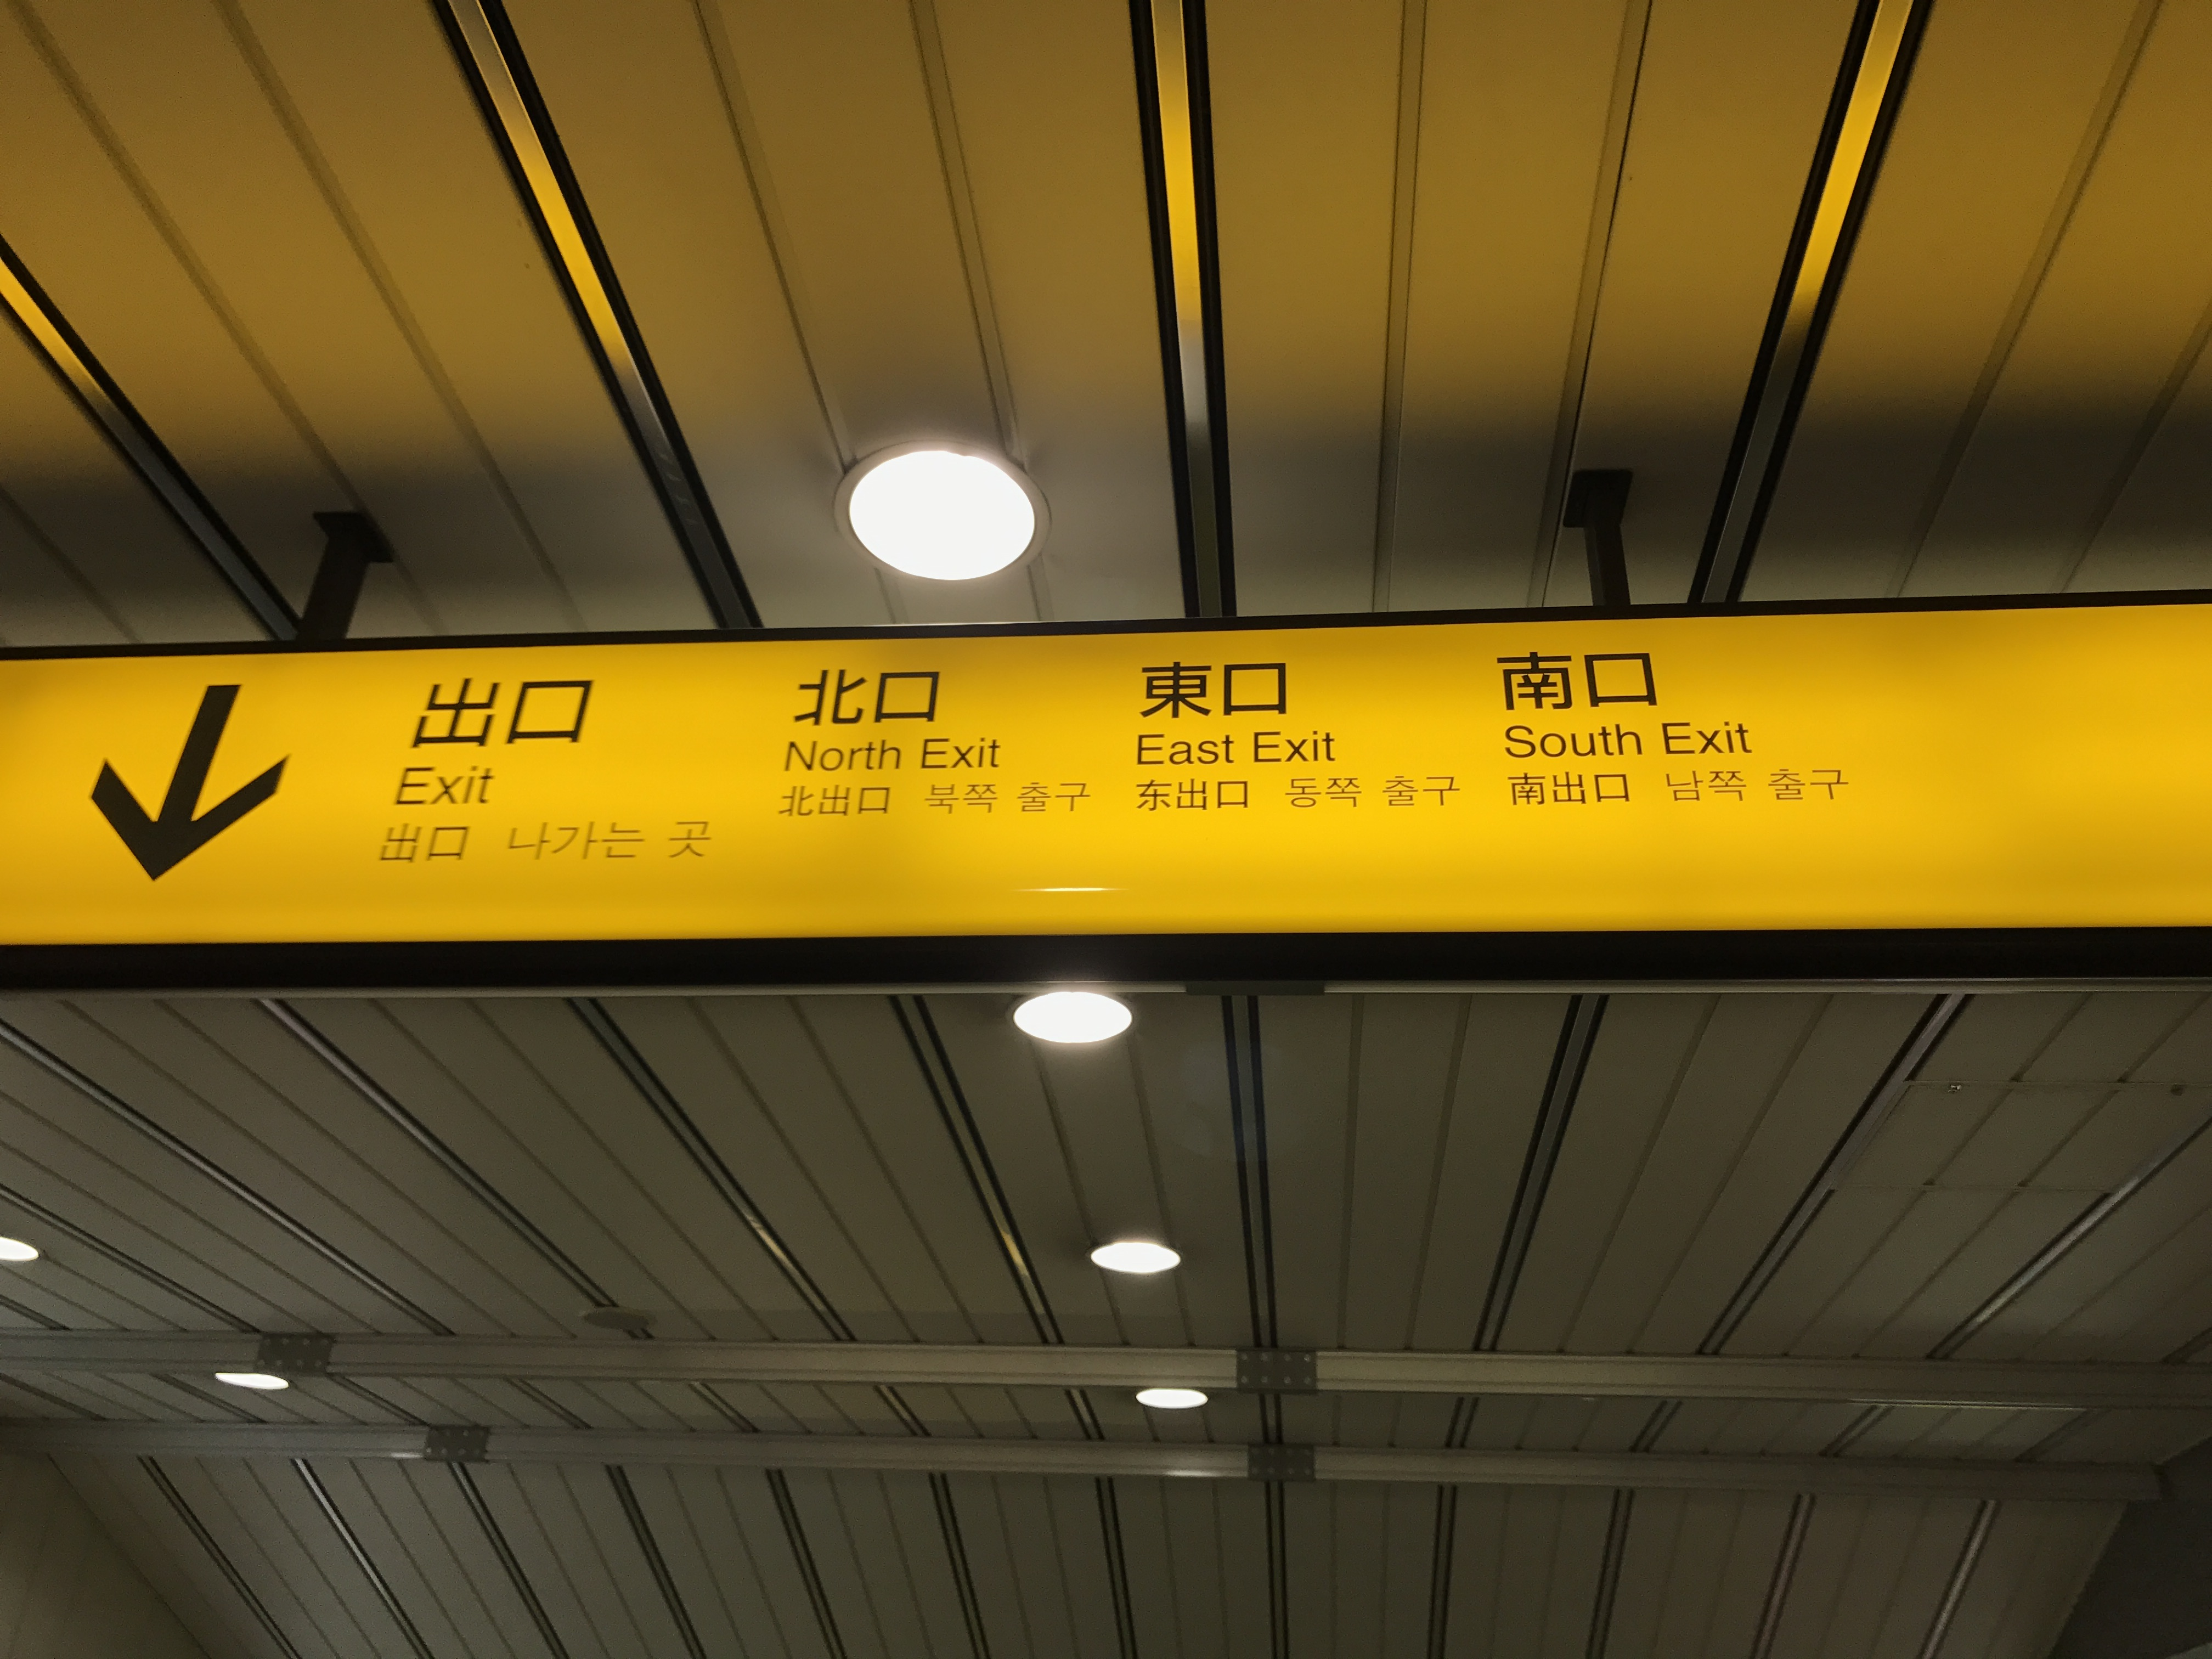 The first exit sign coming down from the platform